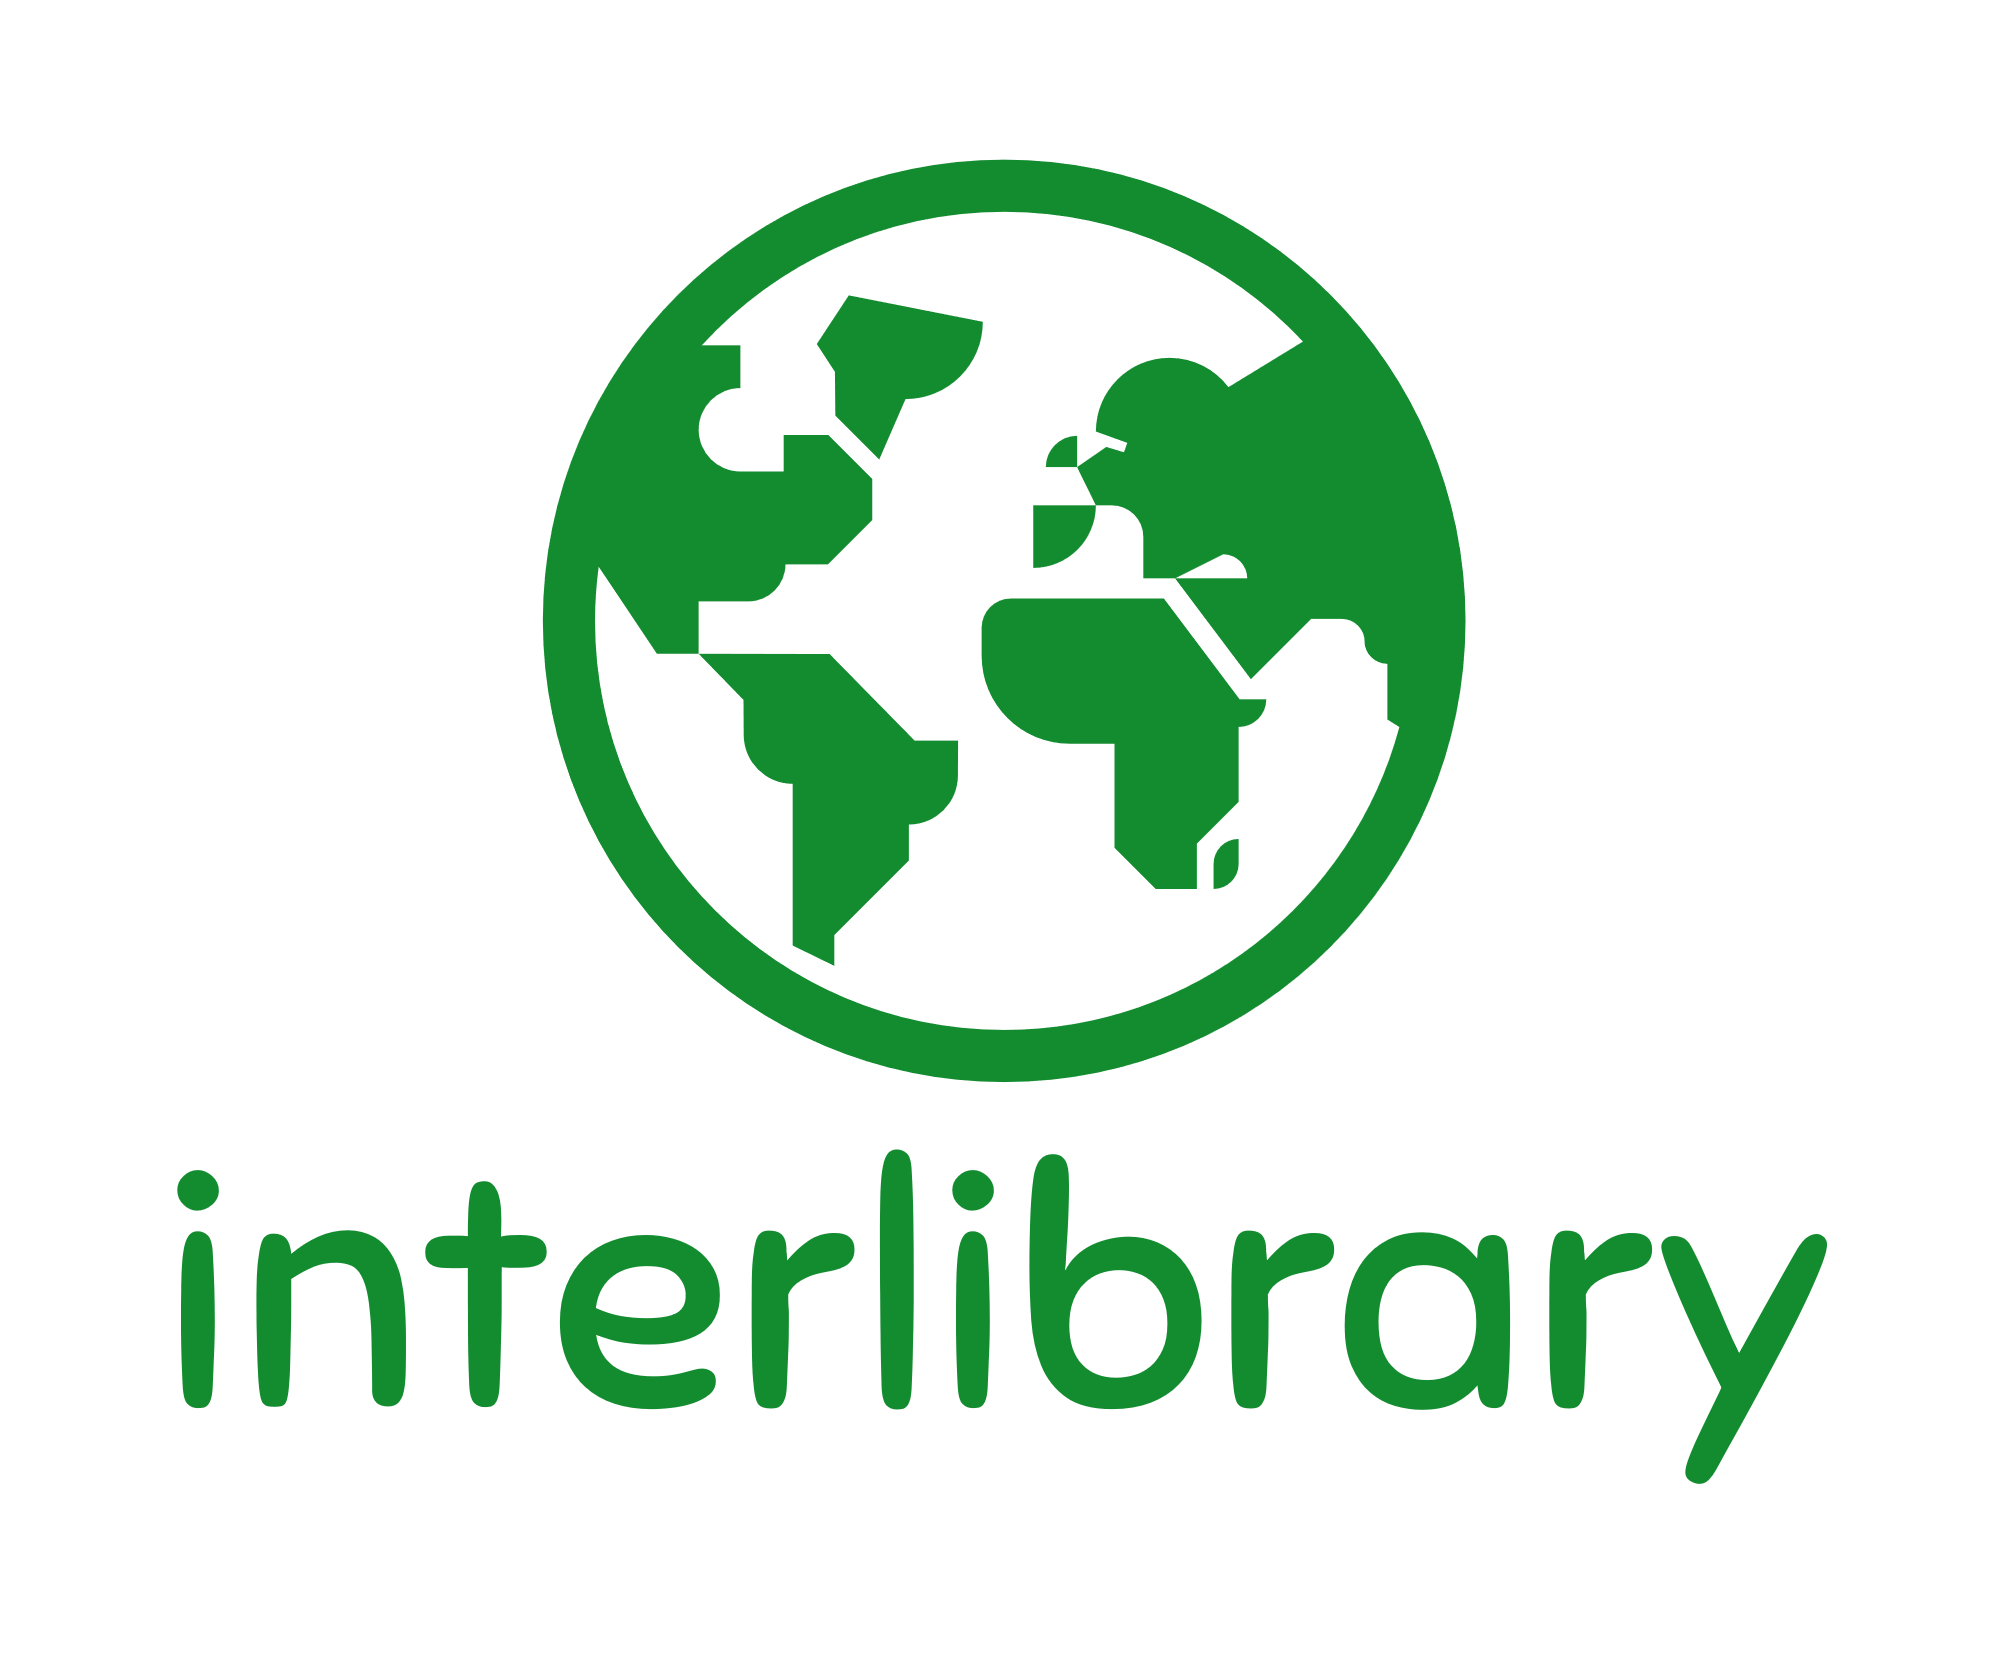 interlibrary-logo-green.png